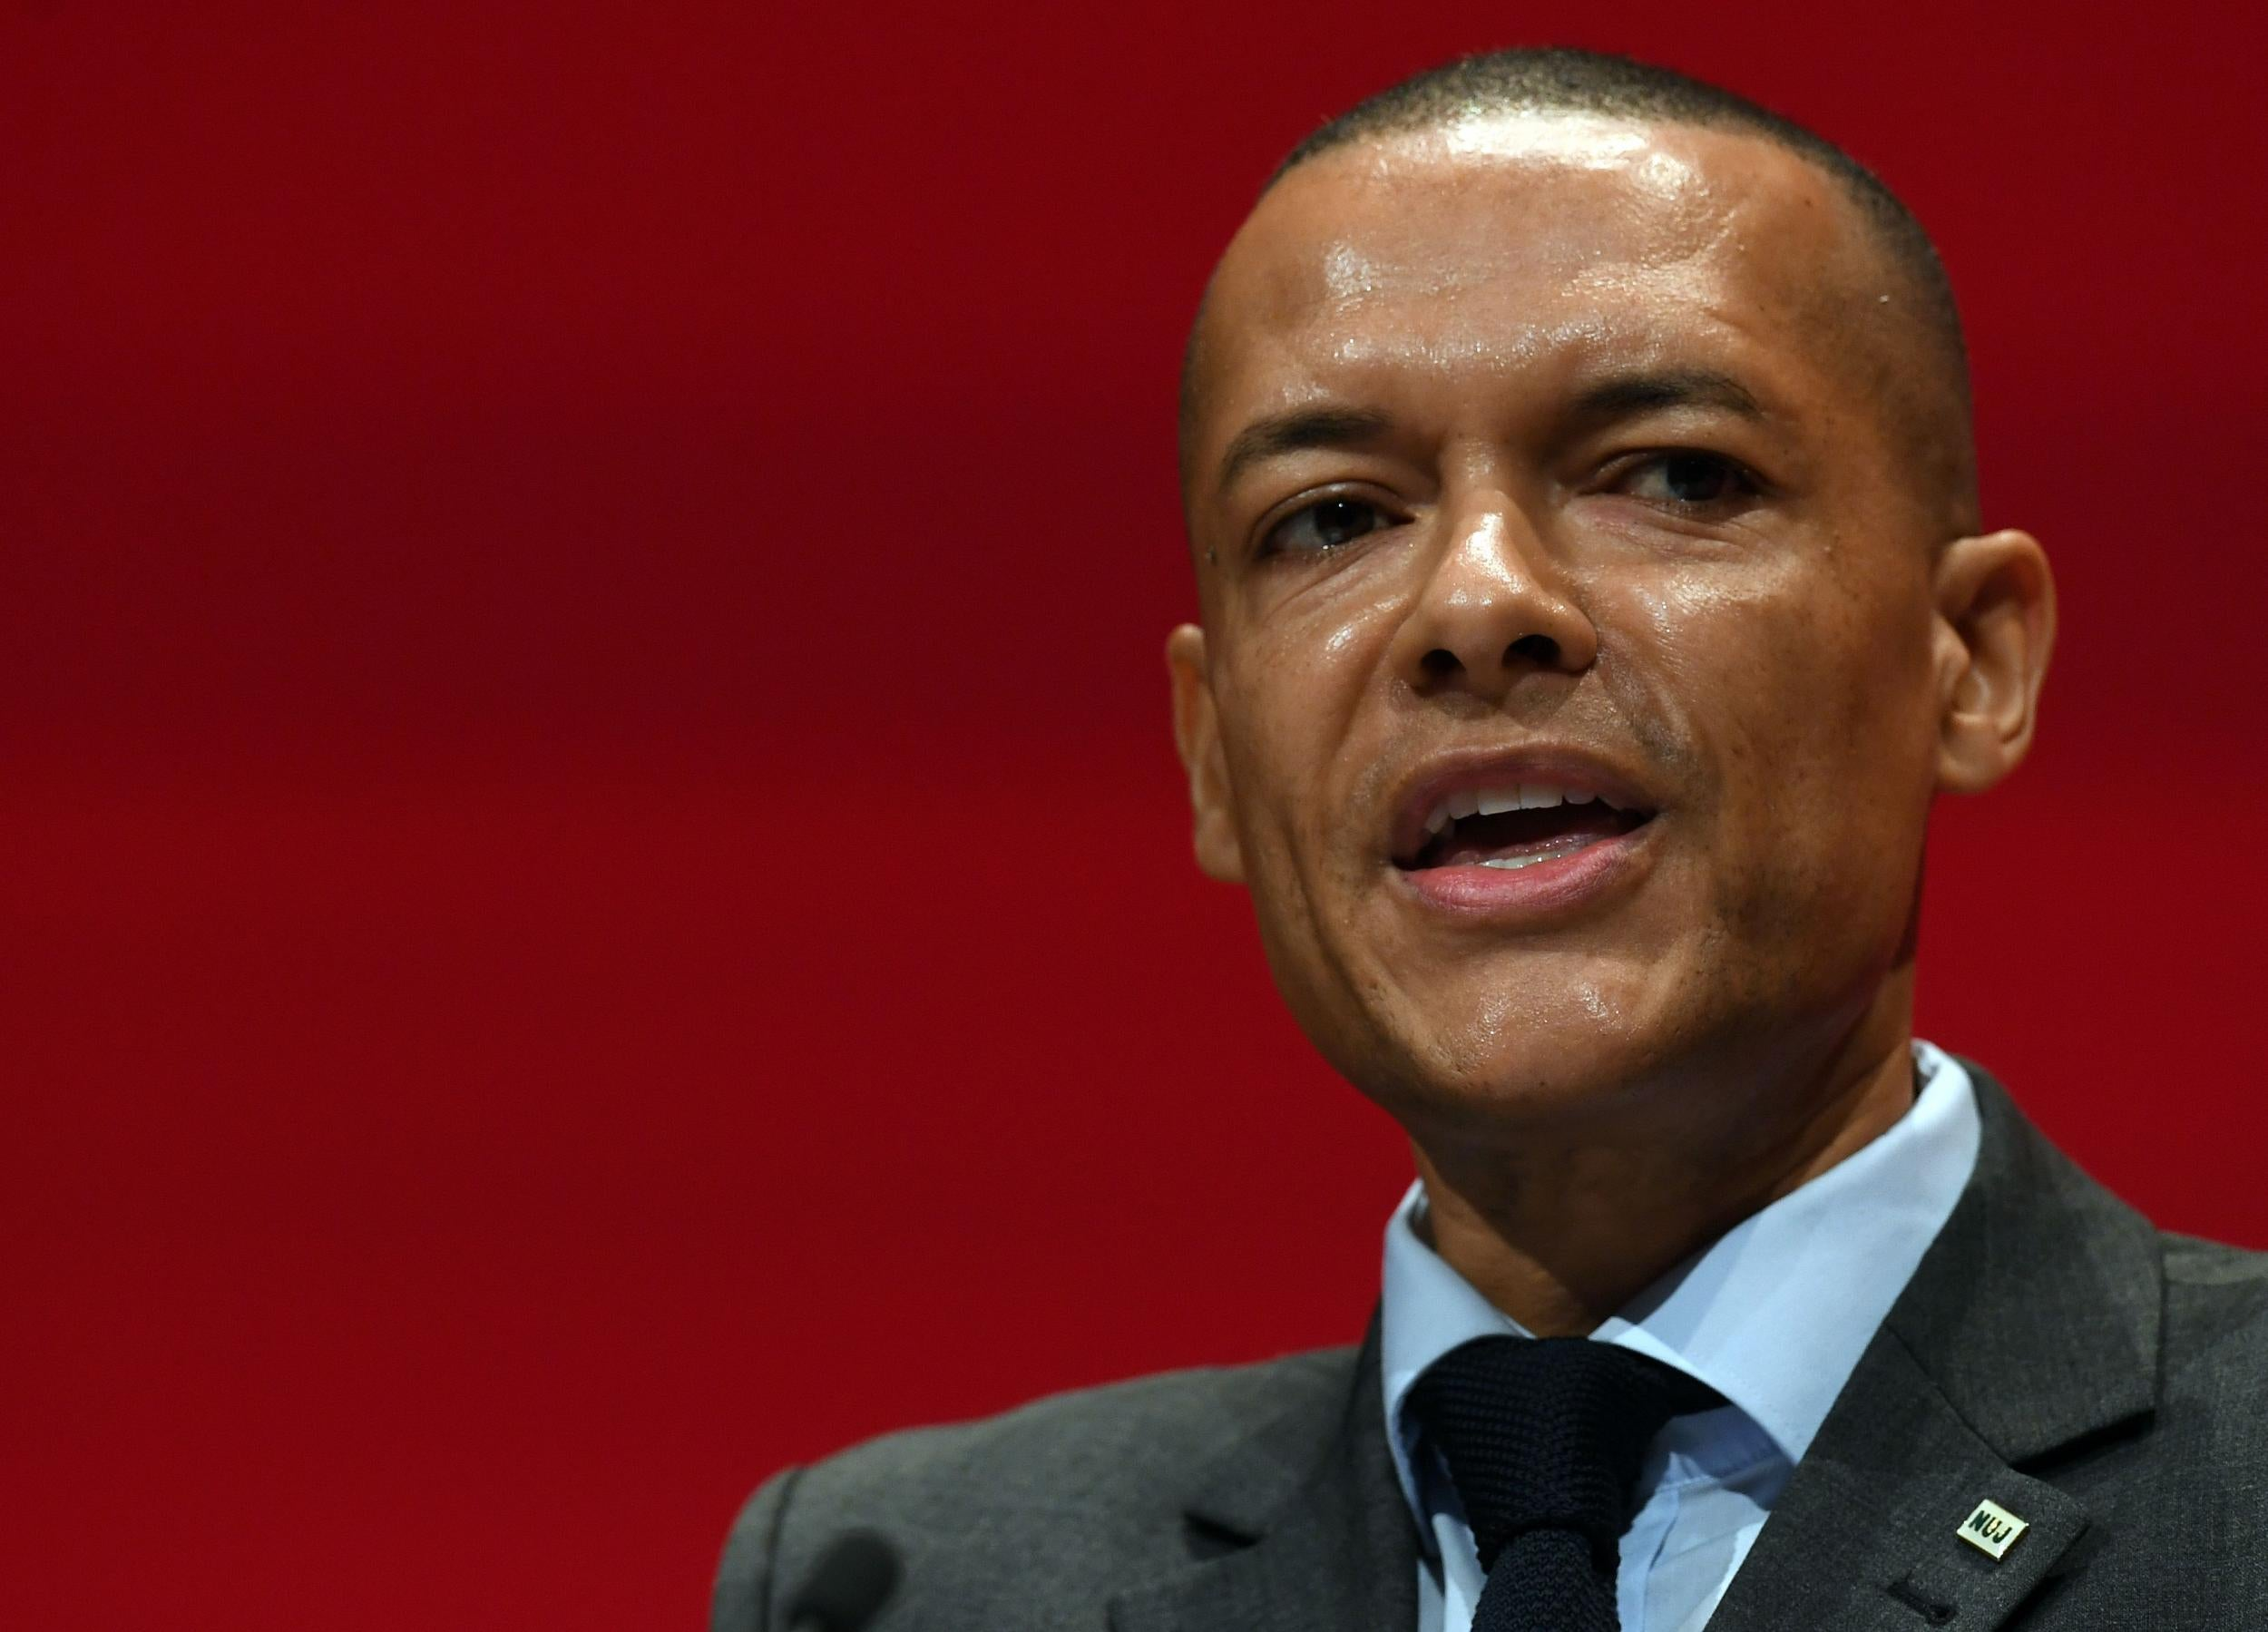 'Get on your knees b***': Clive Lewis apologises after video at Momentum event emerges